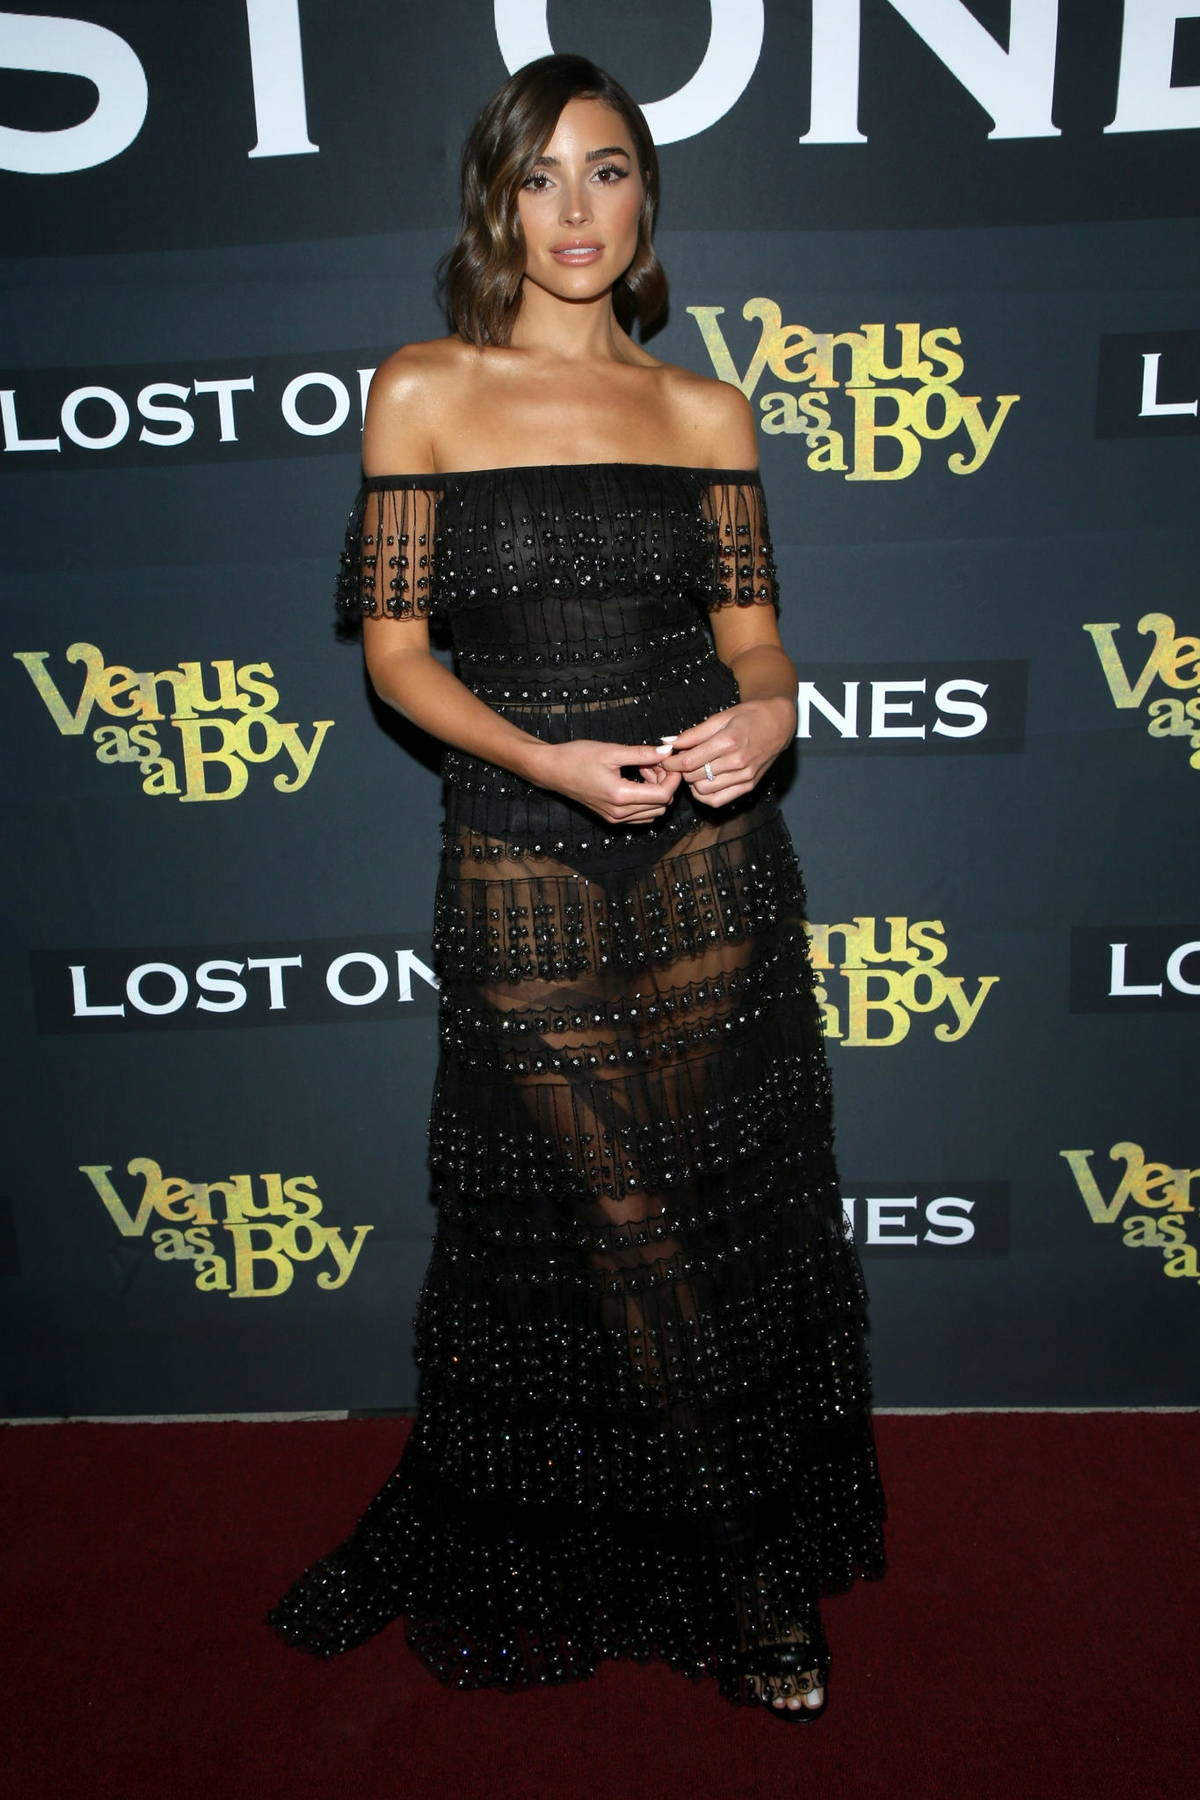 Olivia Culpo attends the Premiere of 'Venus As A Boy' at The Lombardi House in Los Angeles